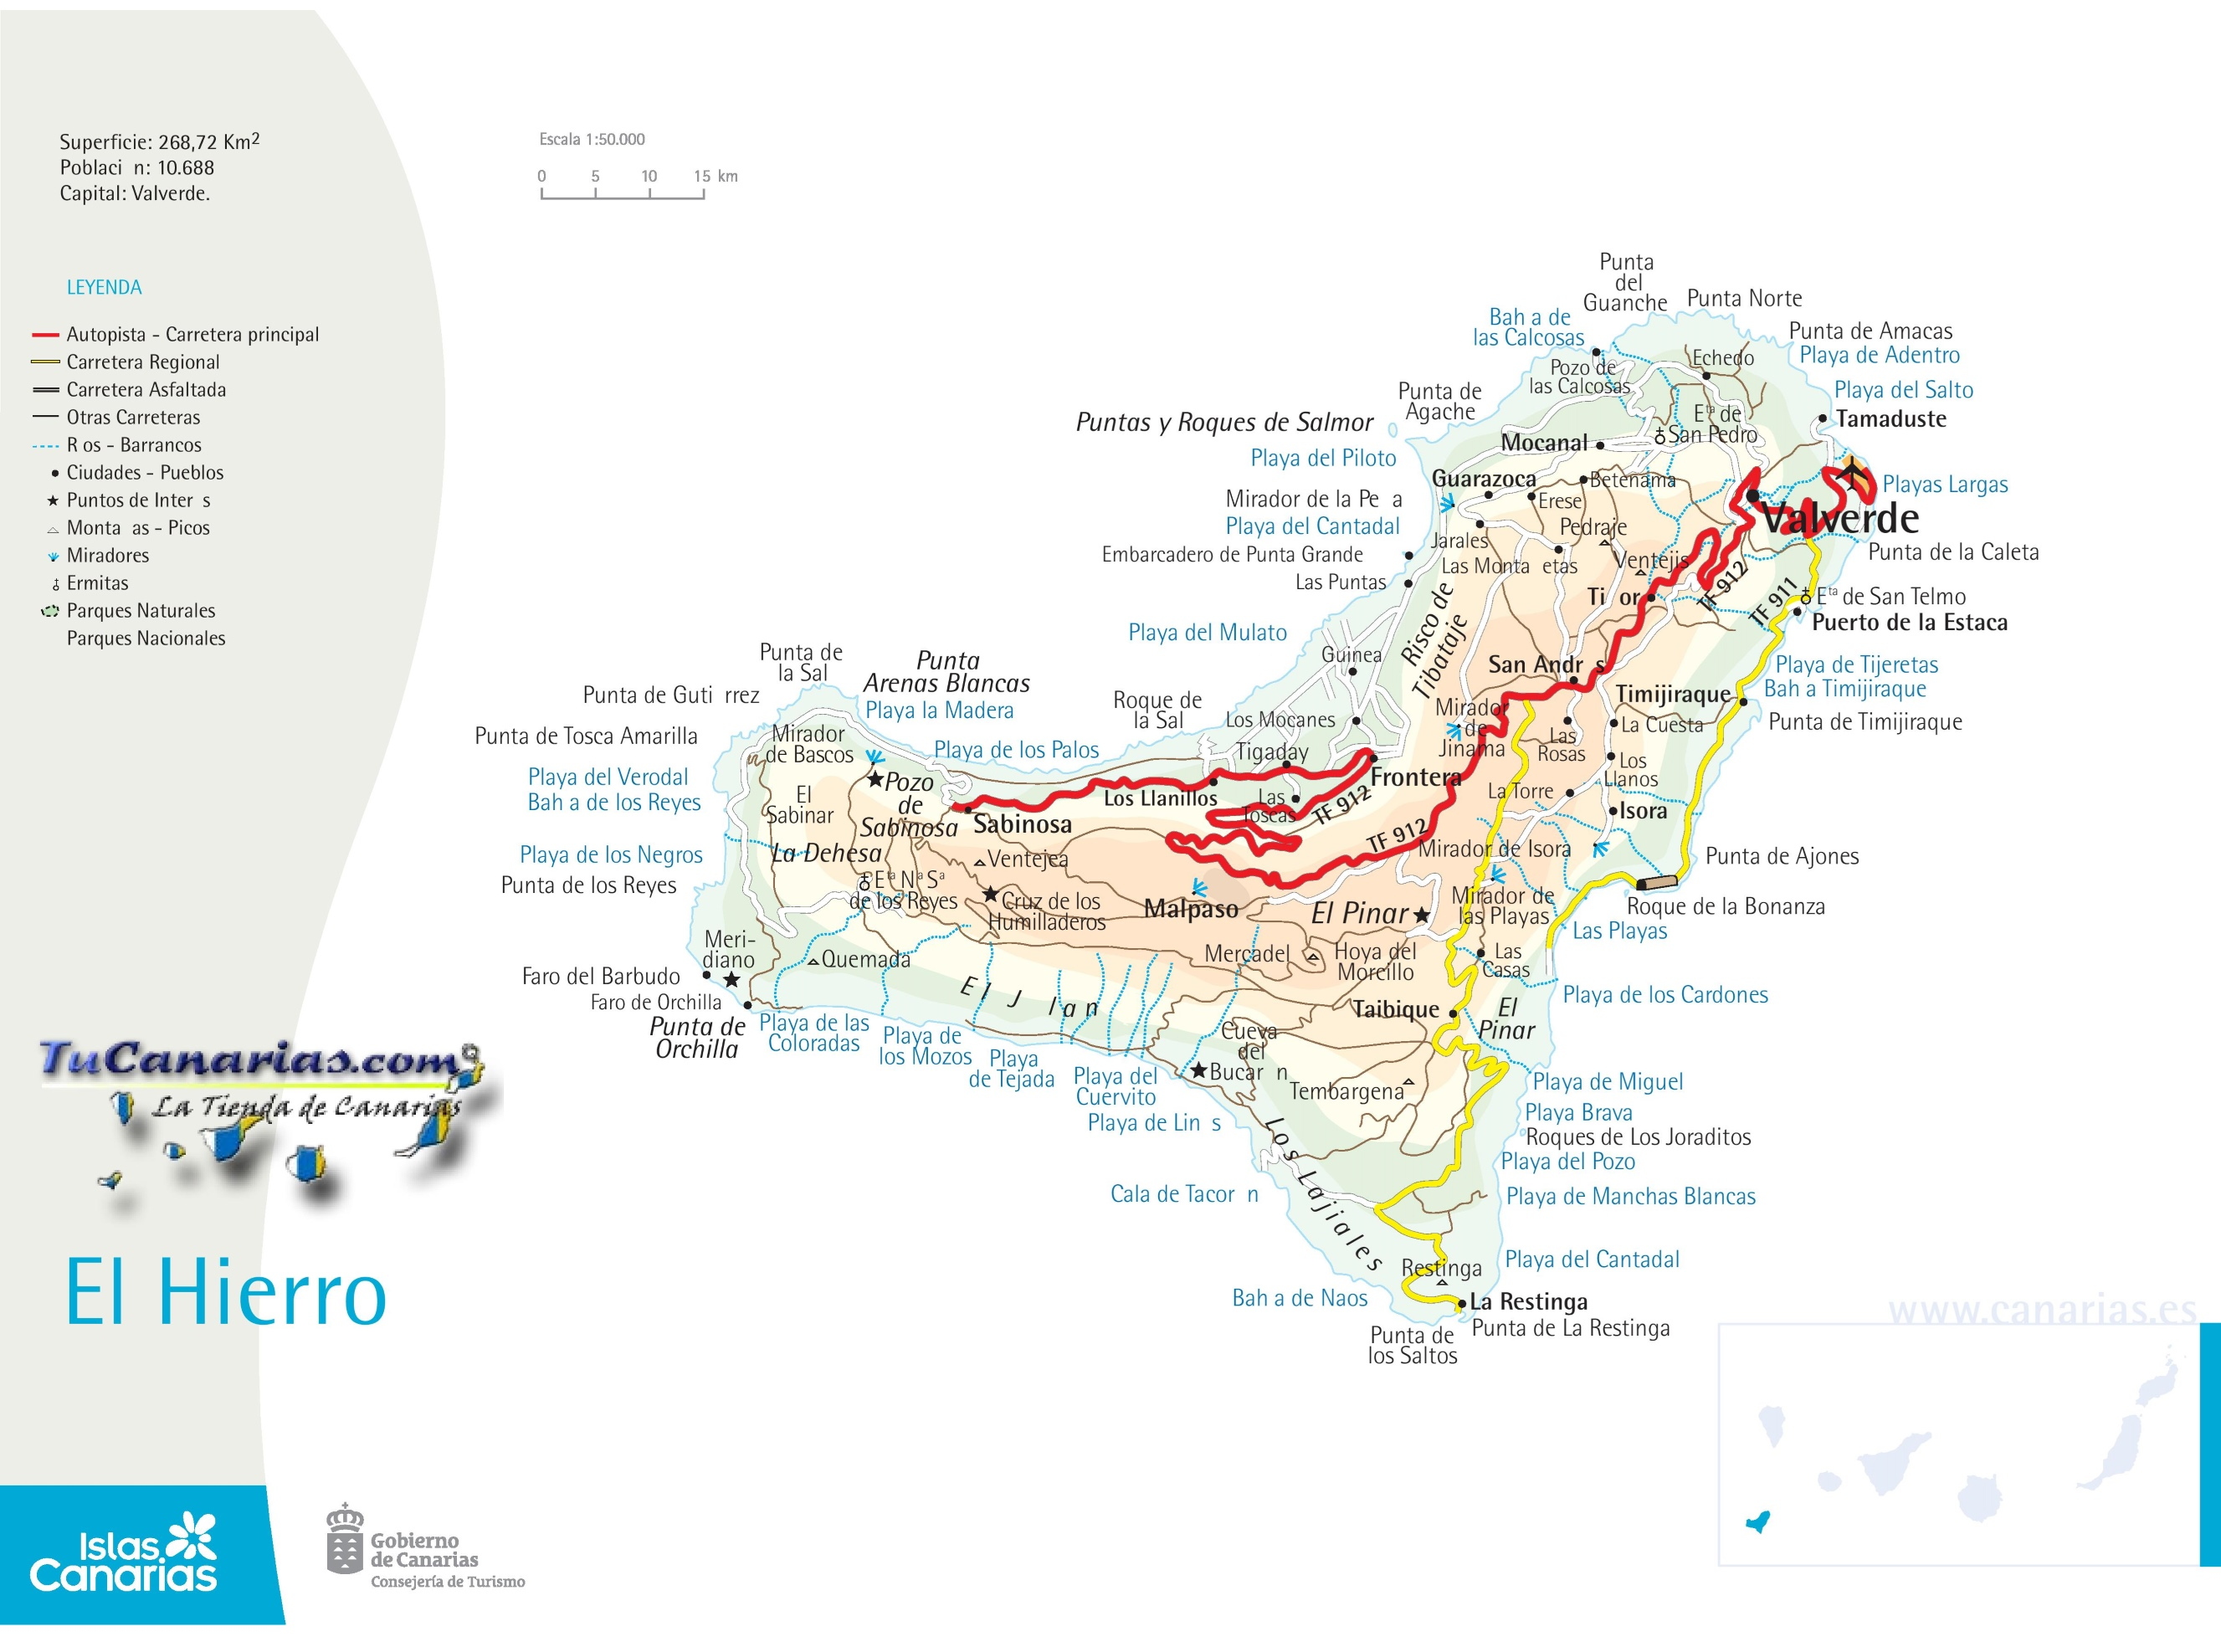 El Hierro Road Map - Monta in us map